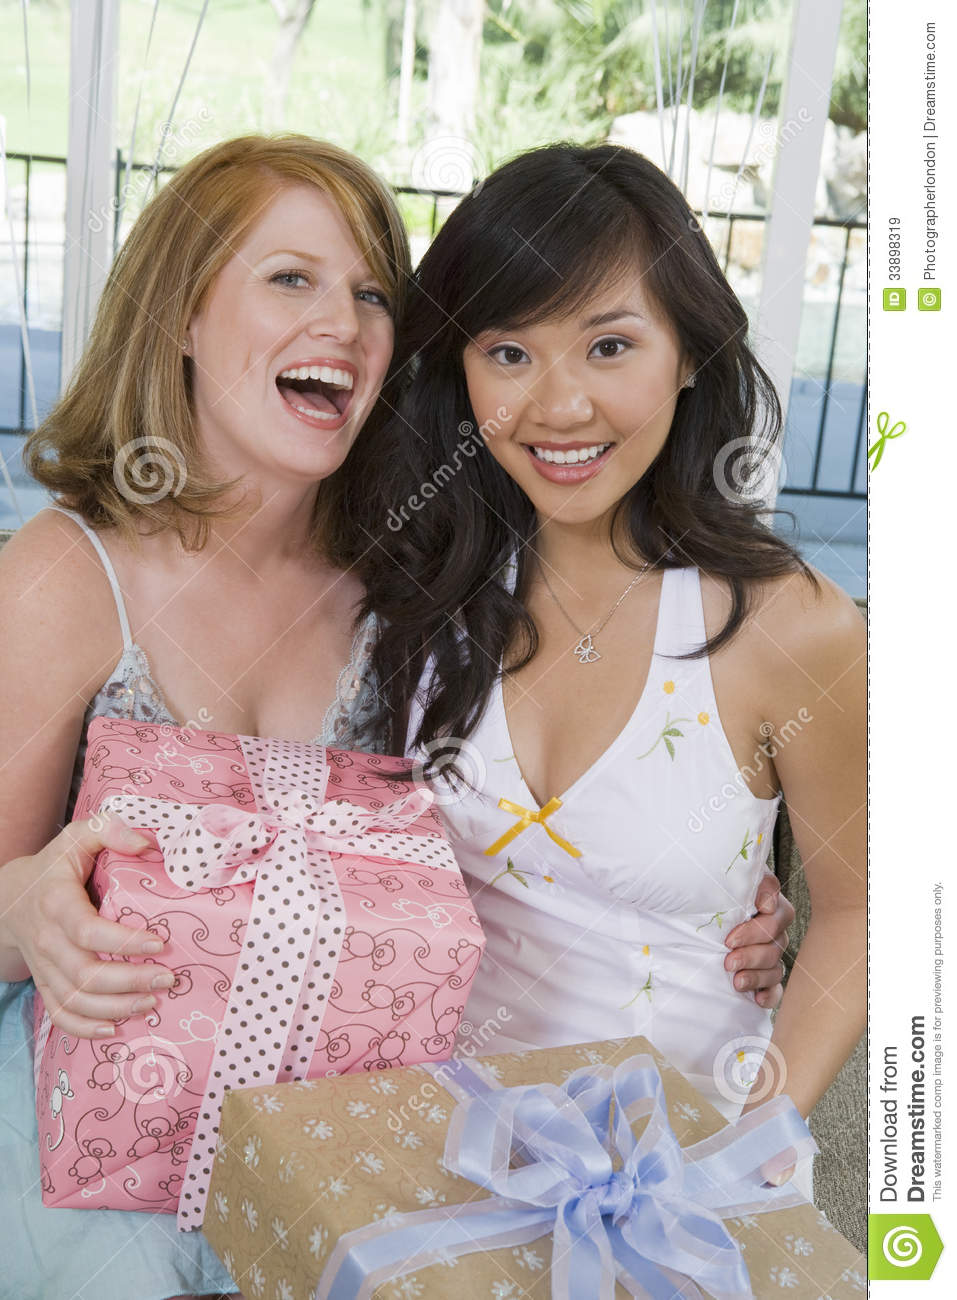 download women with presents at bridal shower stock image image of asian celebration